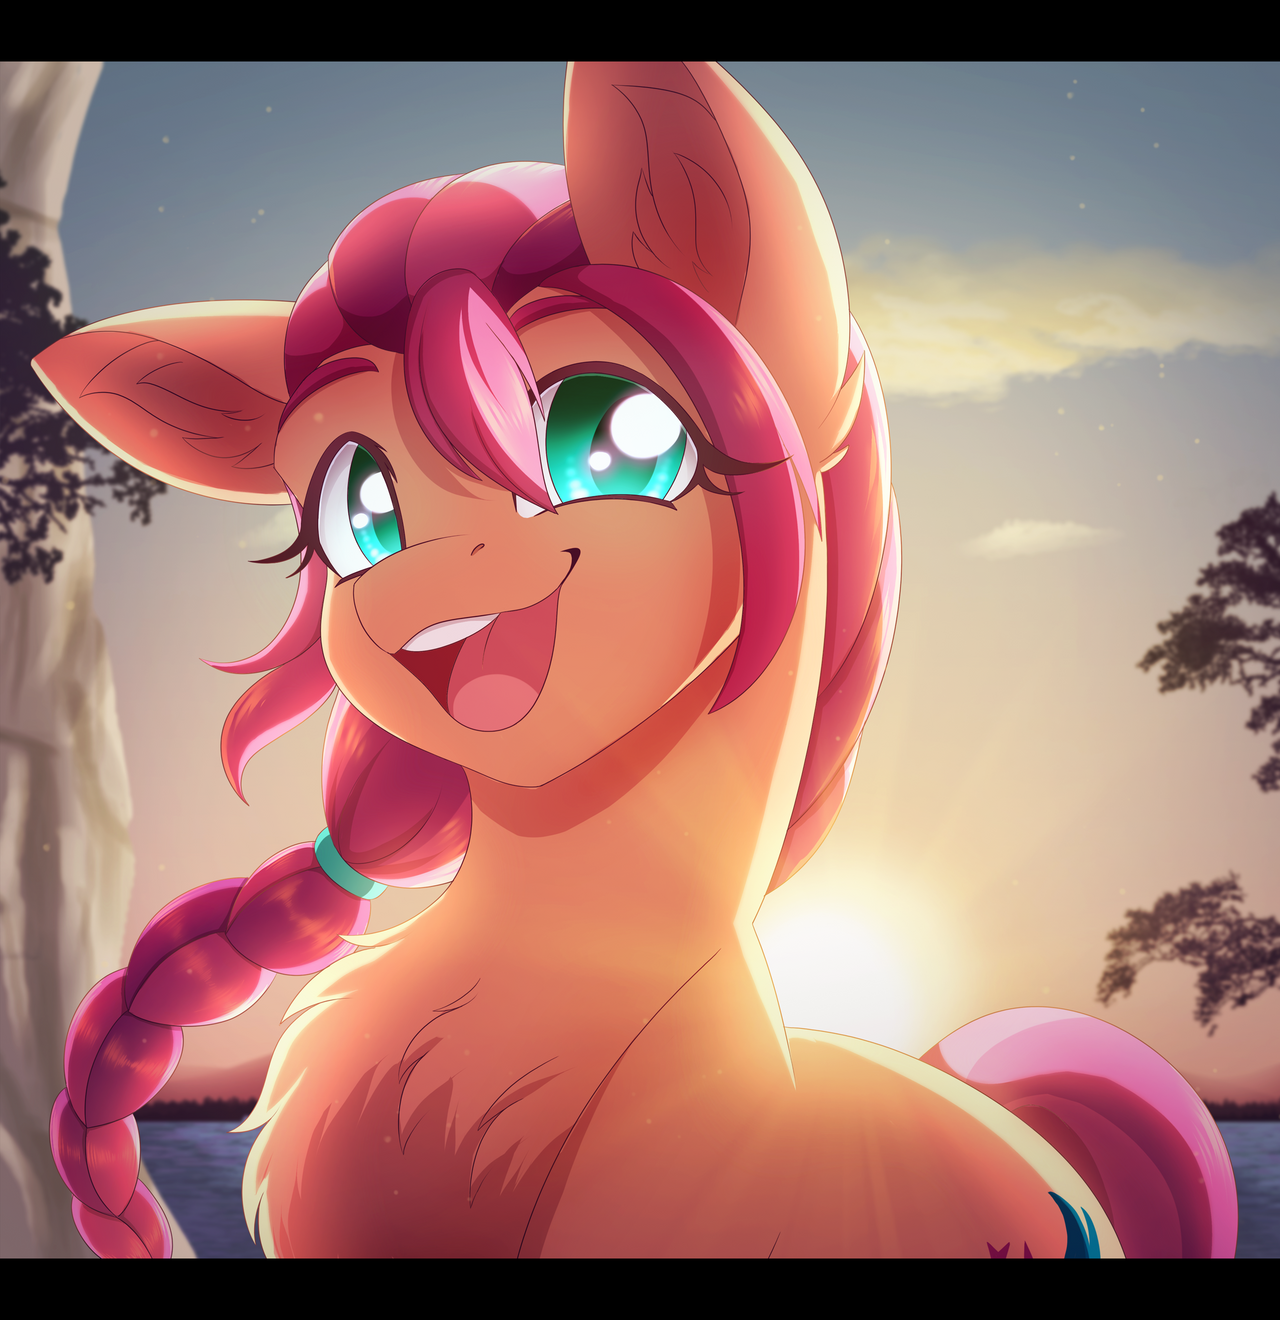 sunny_starscout_by_lady__banshee_dera51w-fullview.png